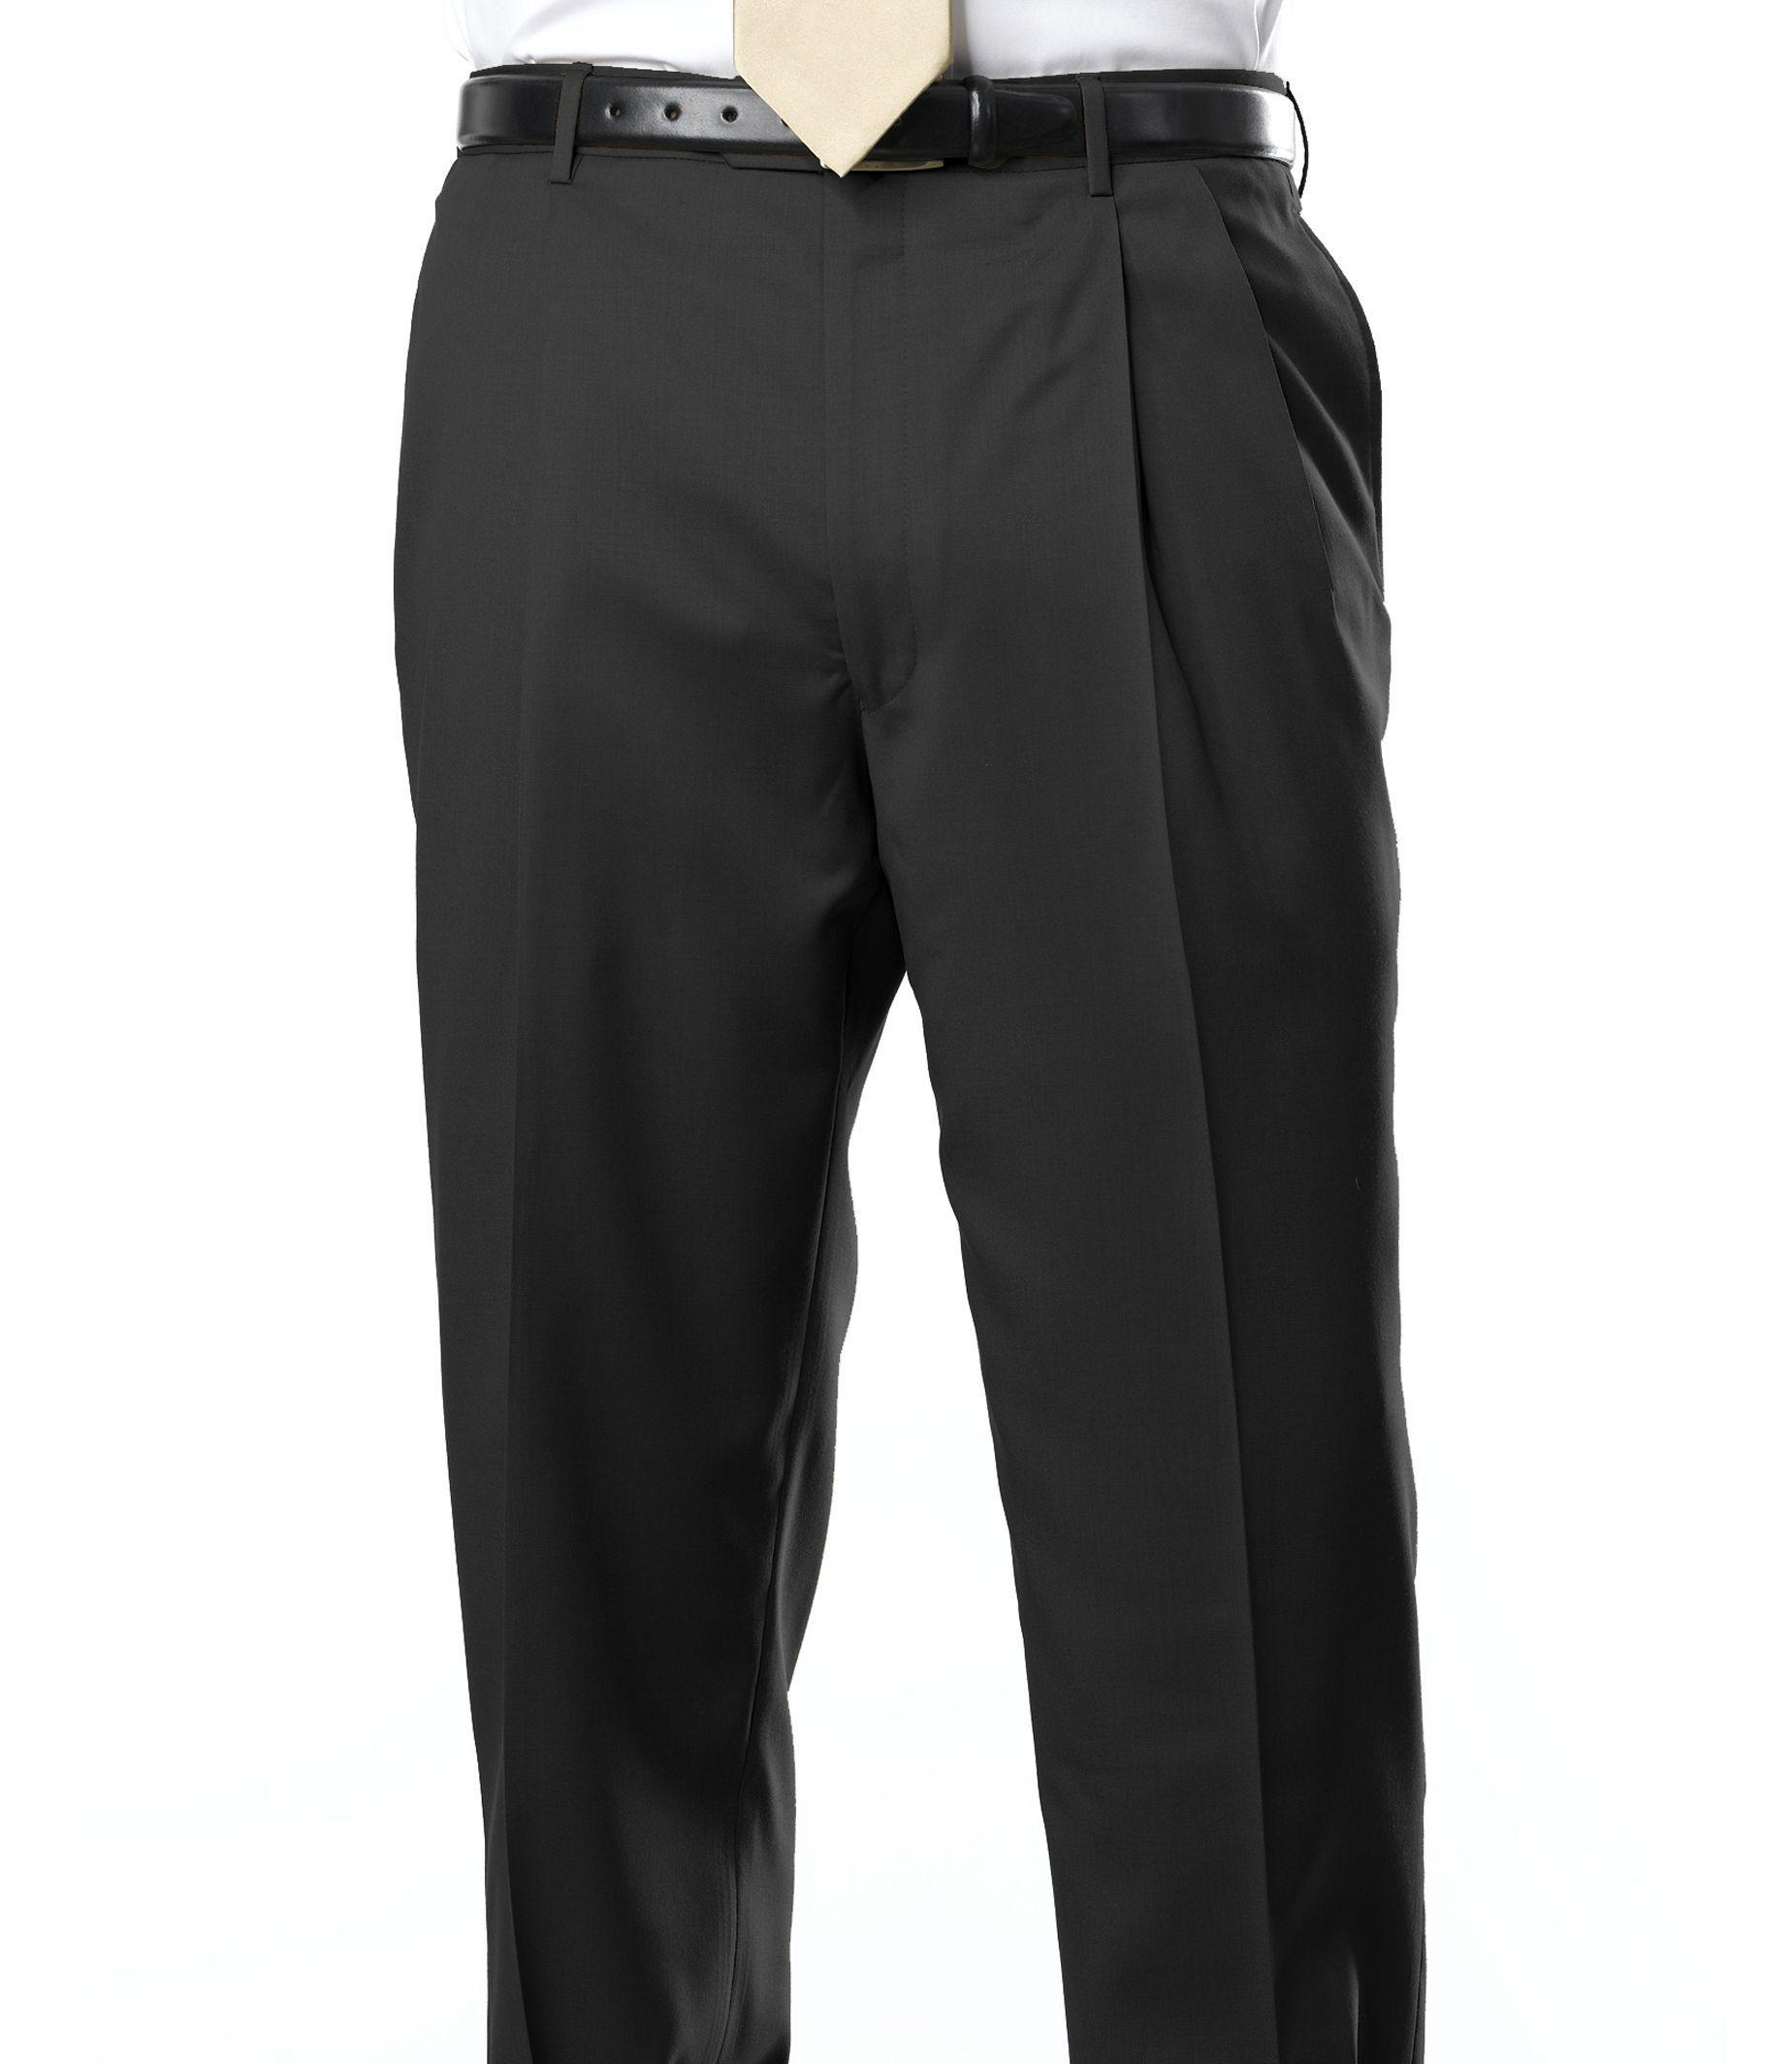 a60c798ce Lyst - Jos. A. Bank Signature Gold Pleated Suit Trousers Regal ...